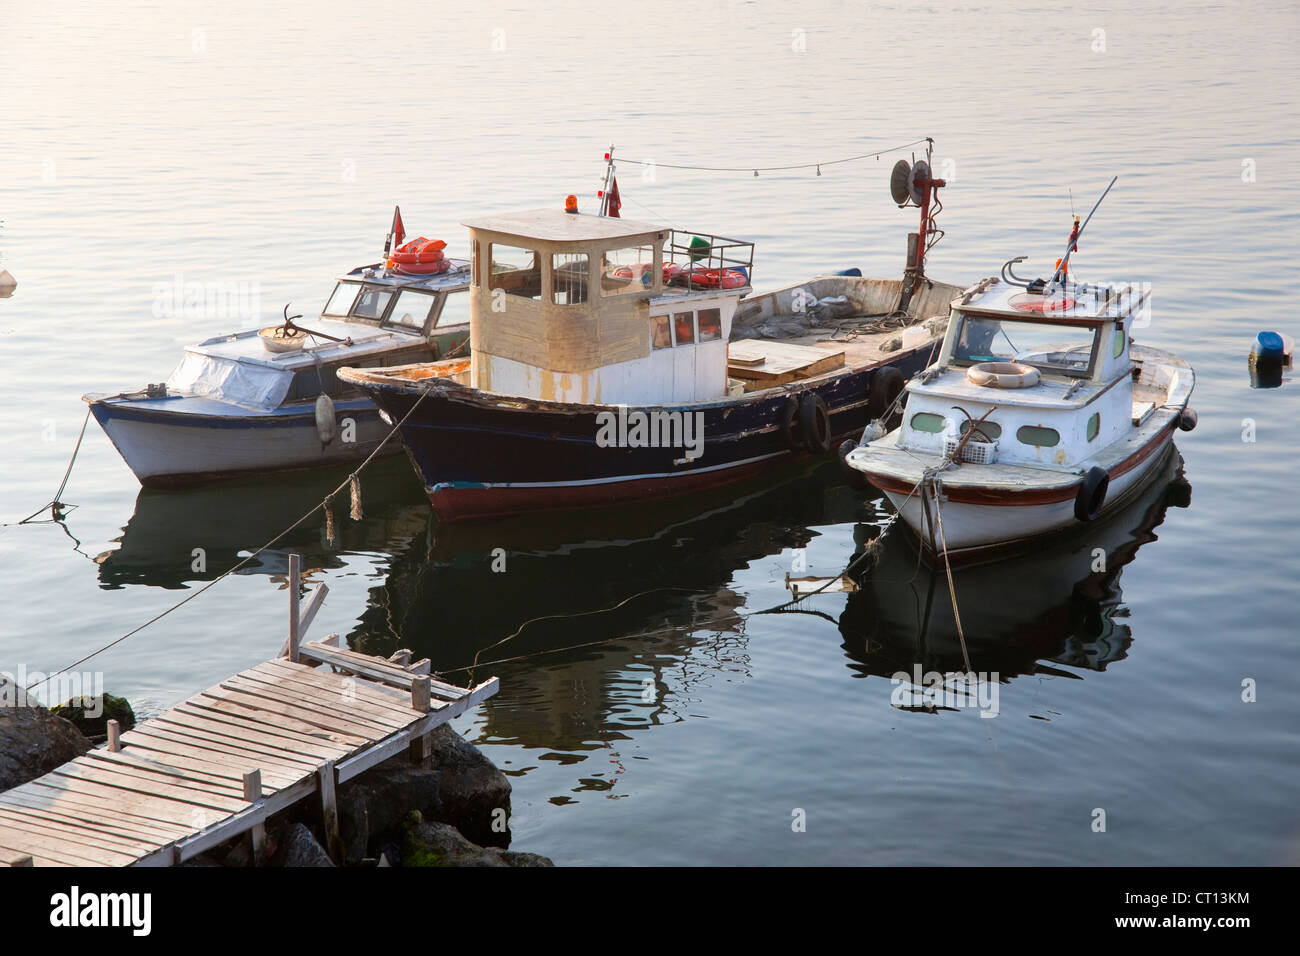 Tugboats docked at pier - Stock Image